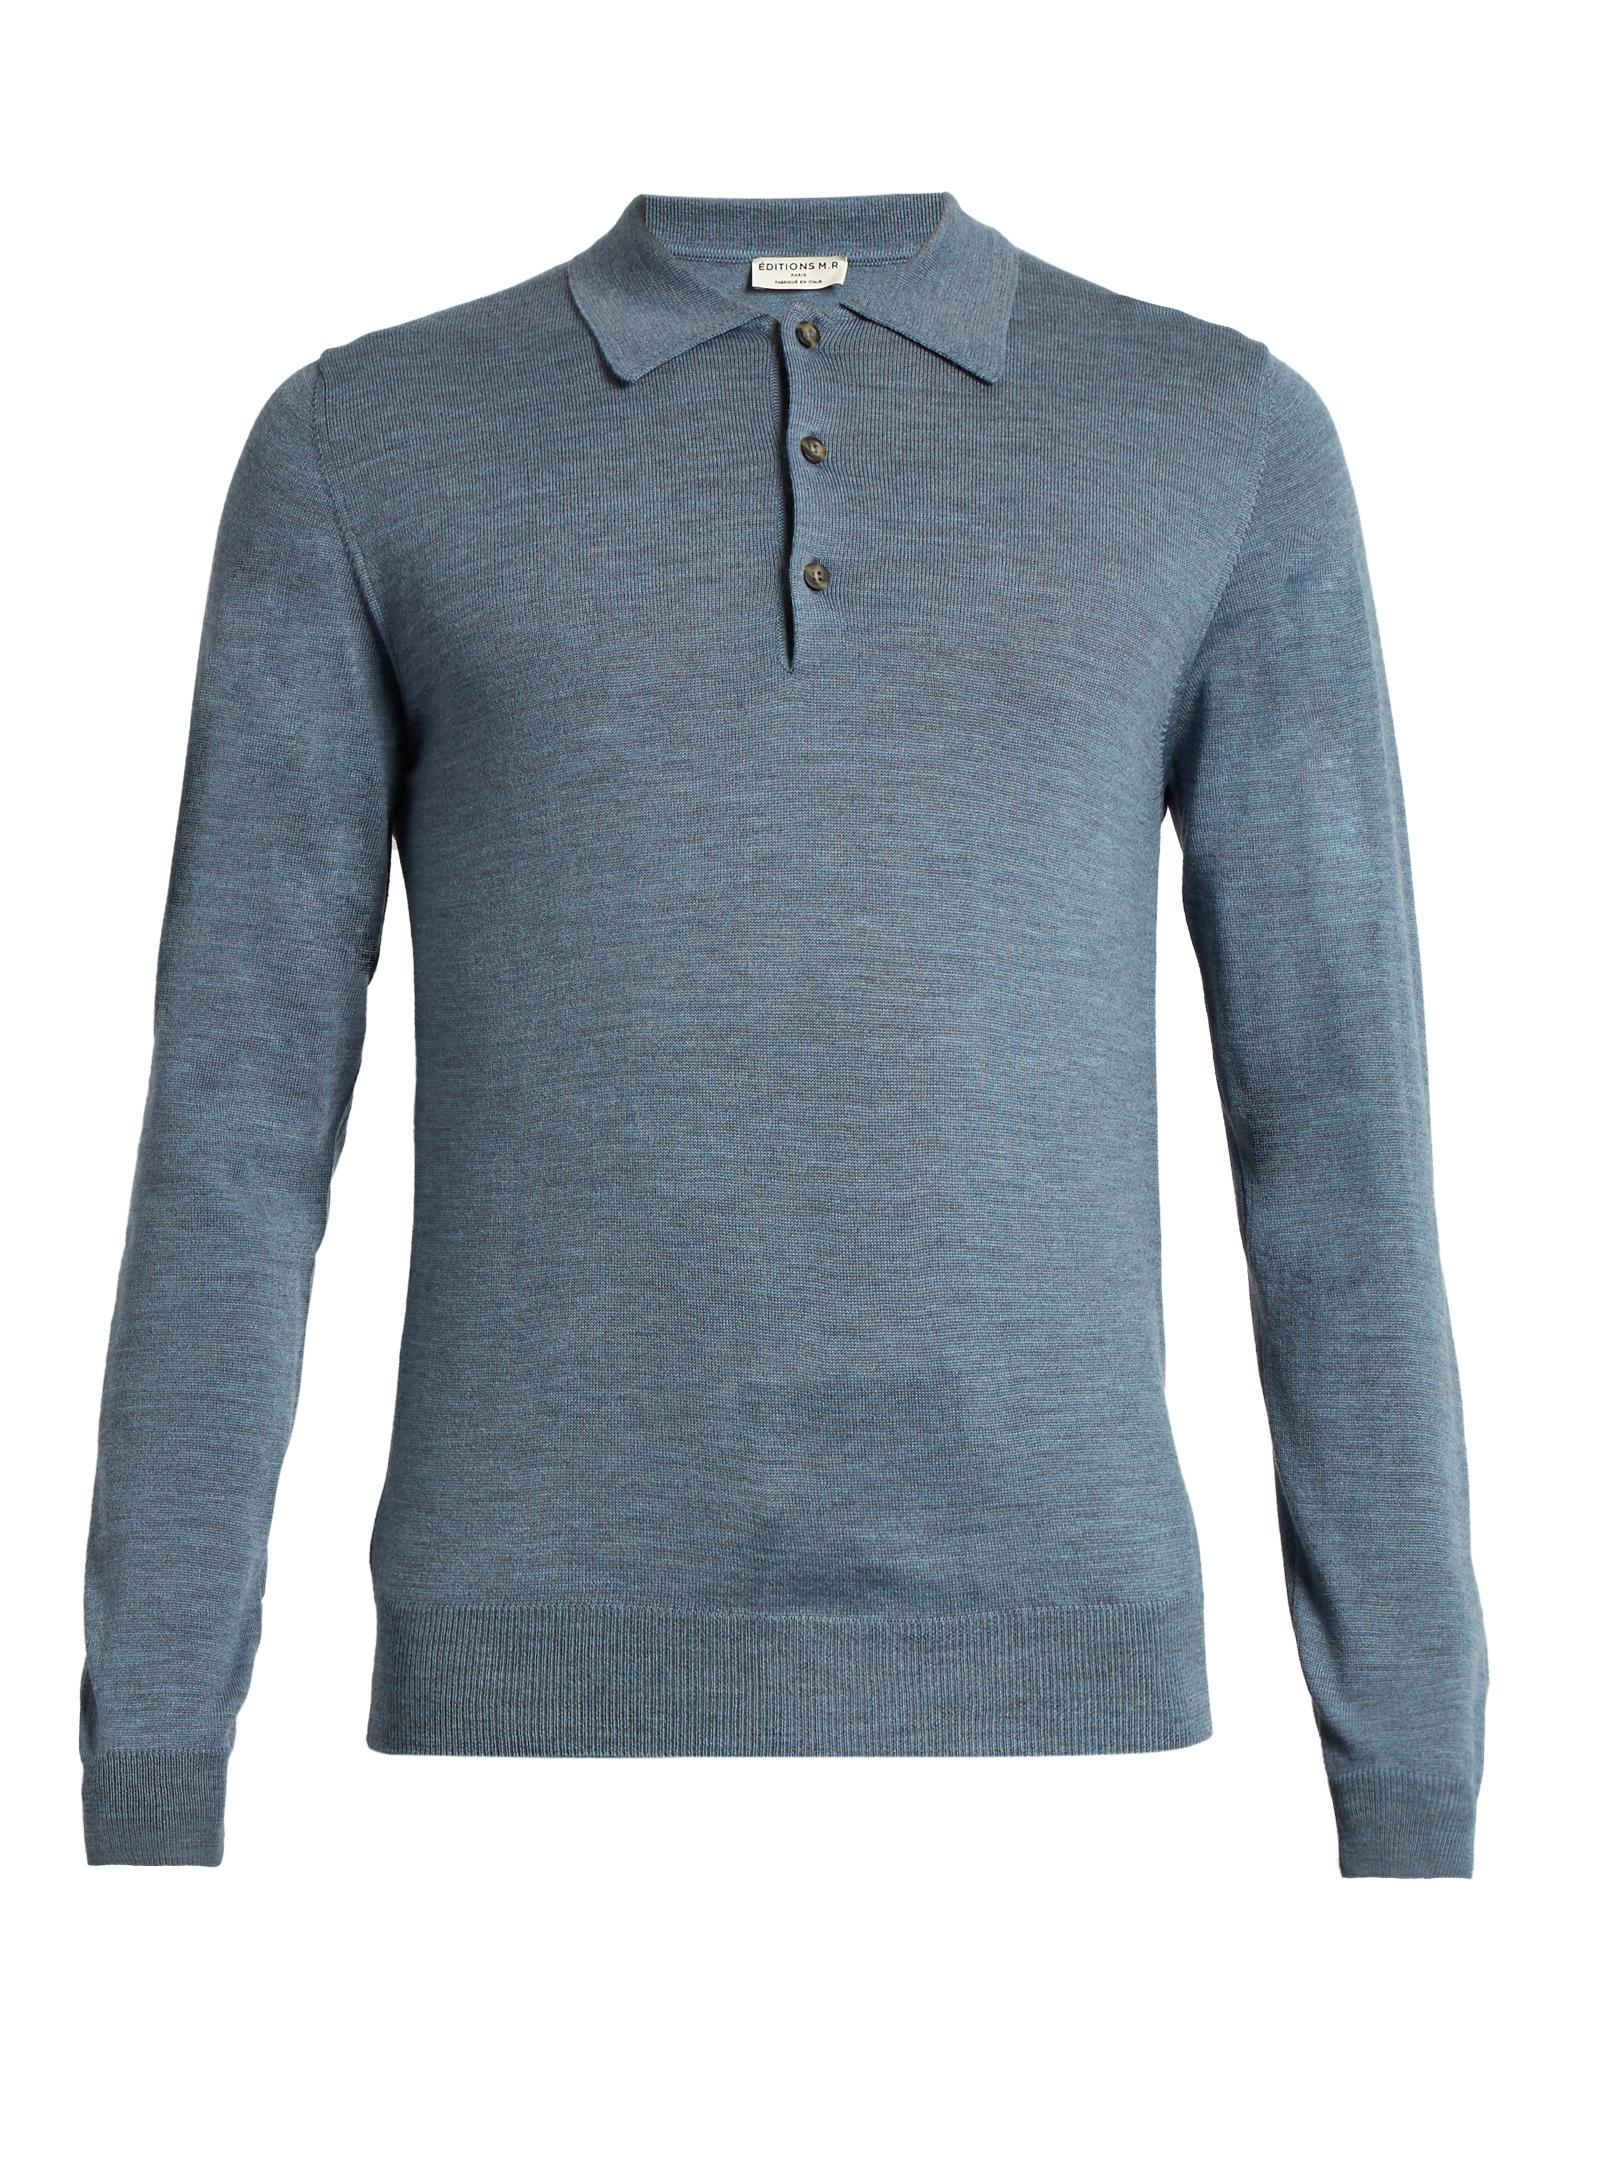 Ditions mr long sleeved wool knit polo shirt in blue for for Long sleeve wool polo shirts